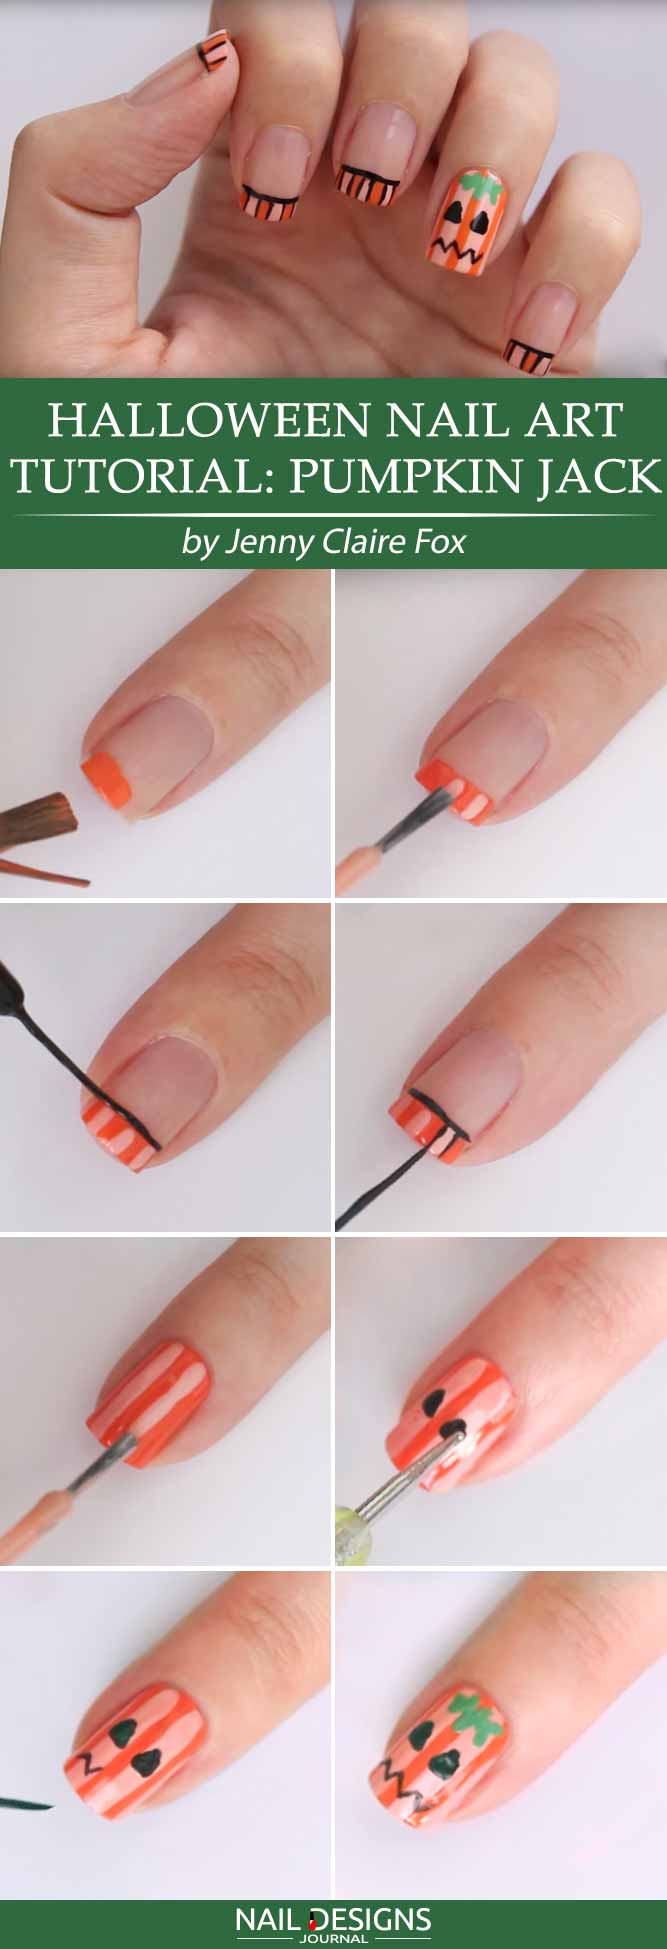 Halloween Nail Art Tutorial Pumpkin Jack